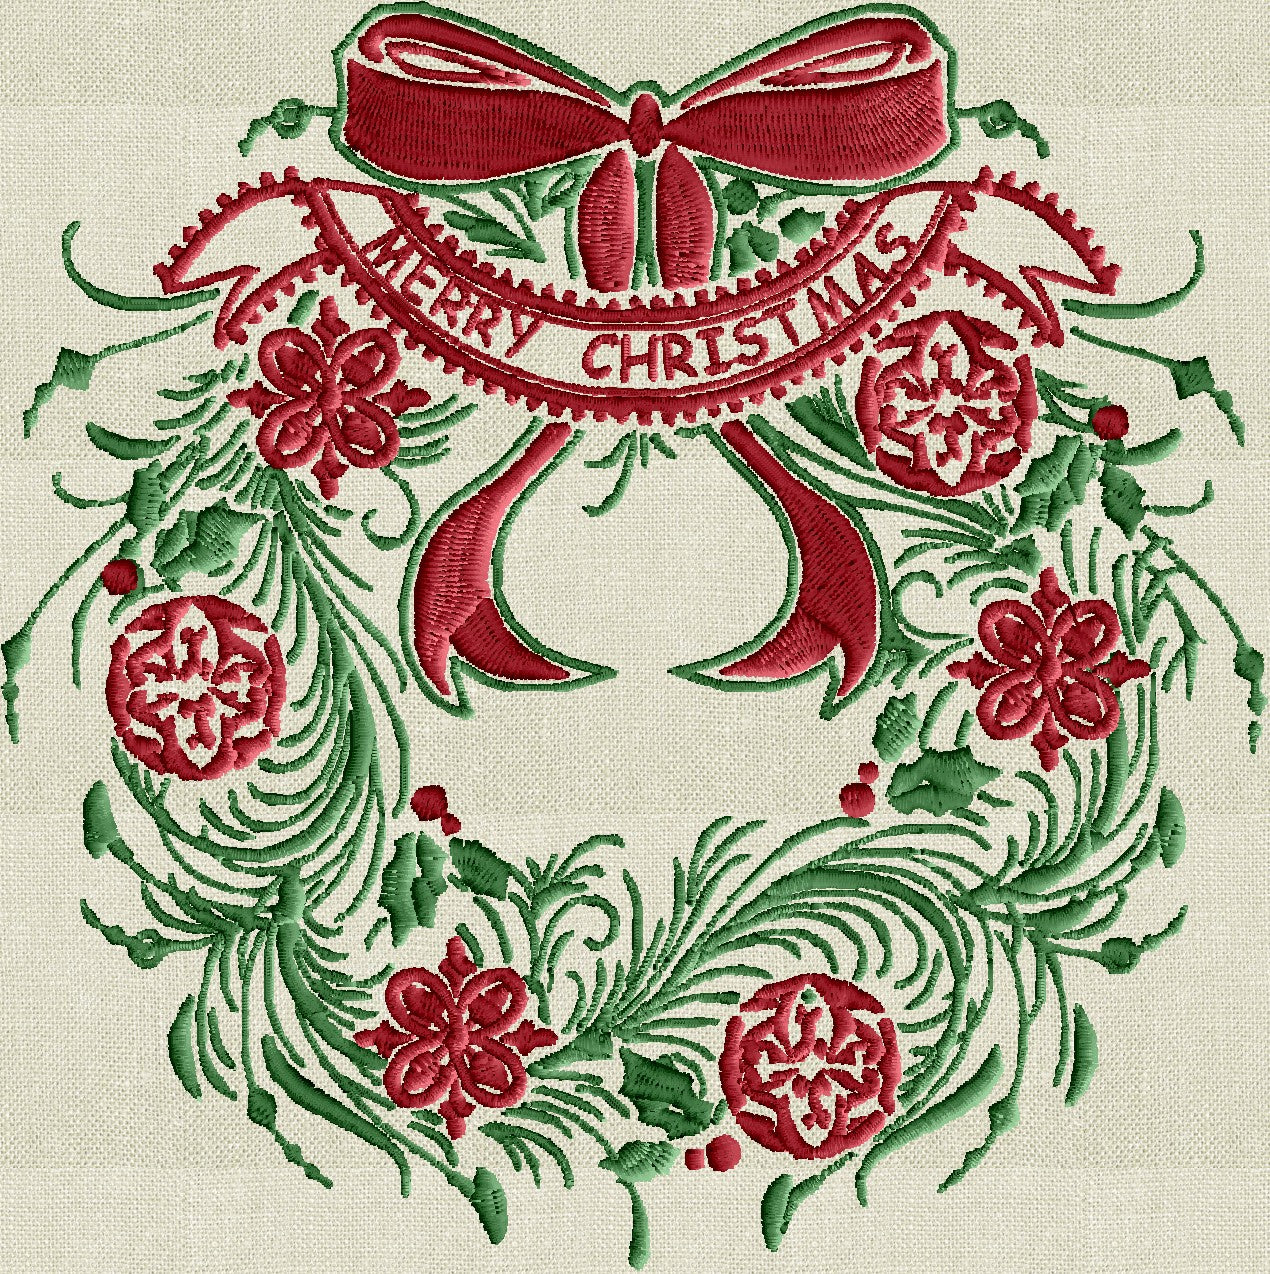 Feather Wreath Bow Merry Christmas Embroidery Design File